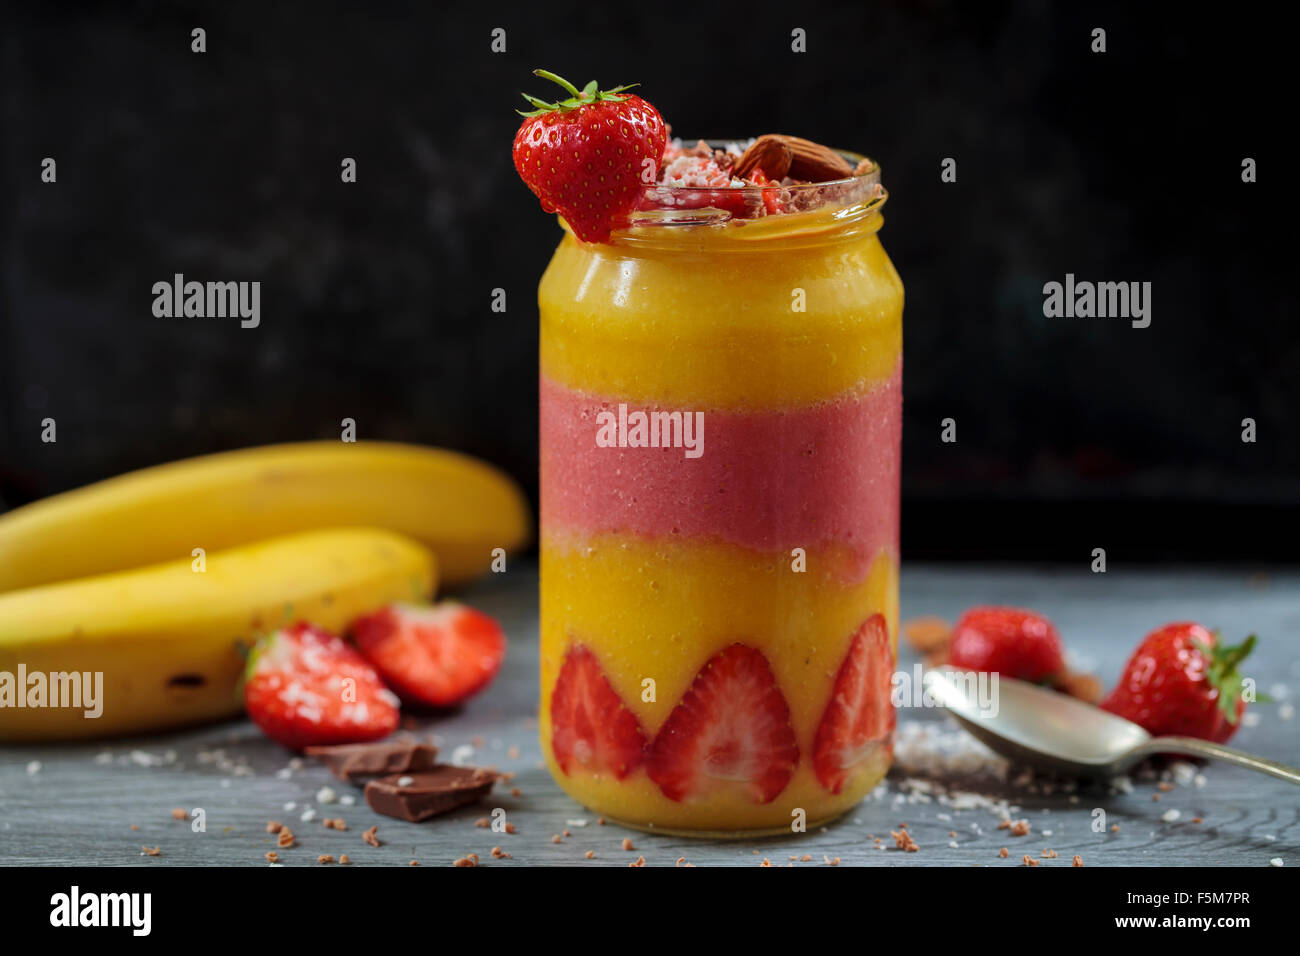 Smoothie aux fraises et à la mangue Photo Stock